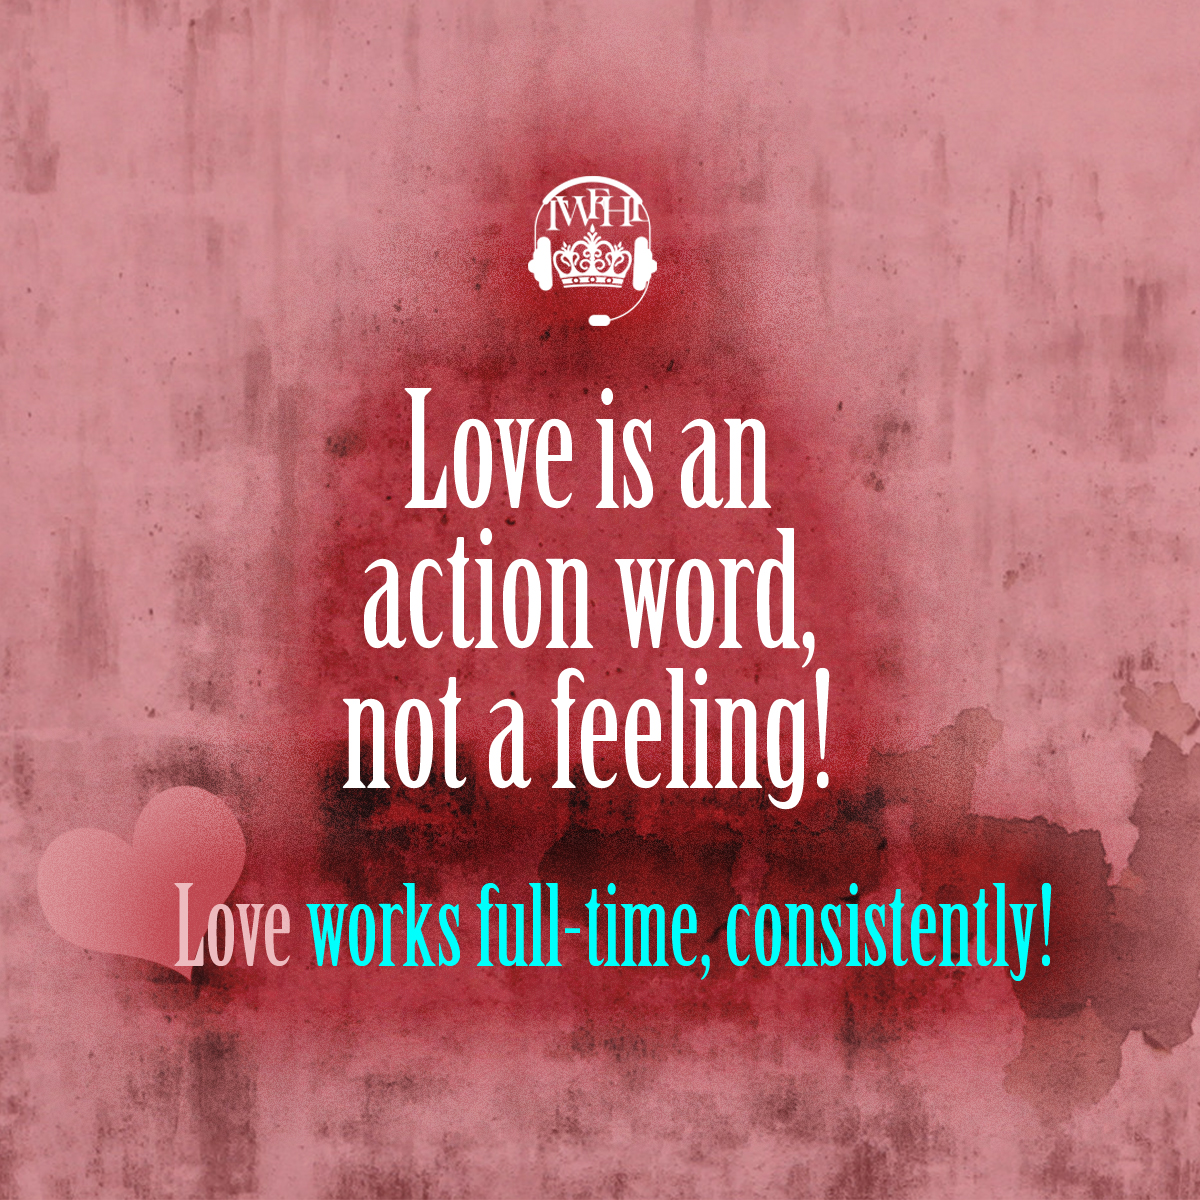 LoveIsAction